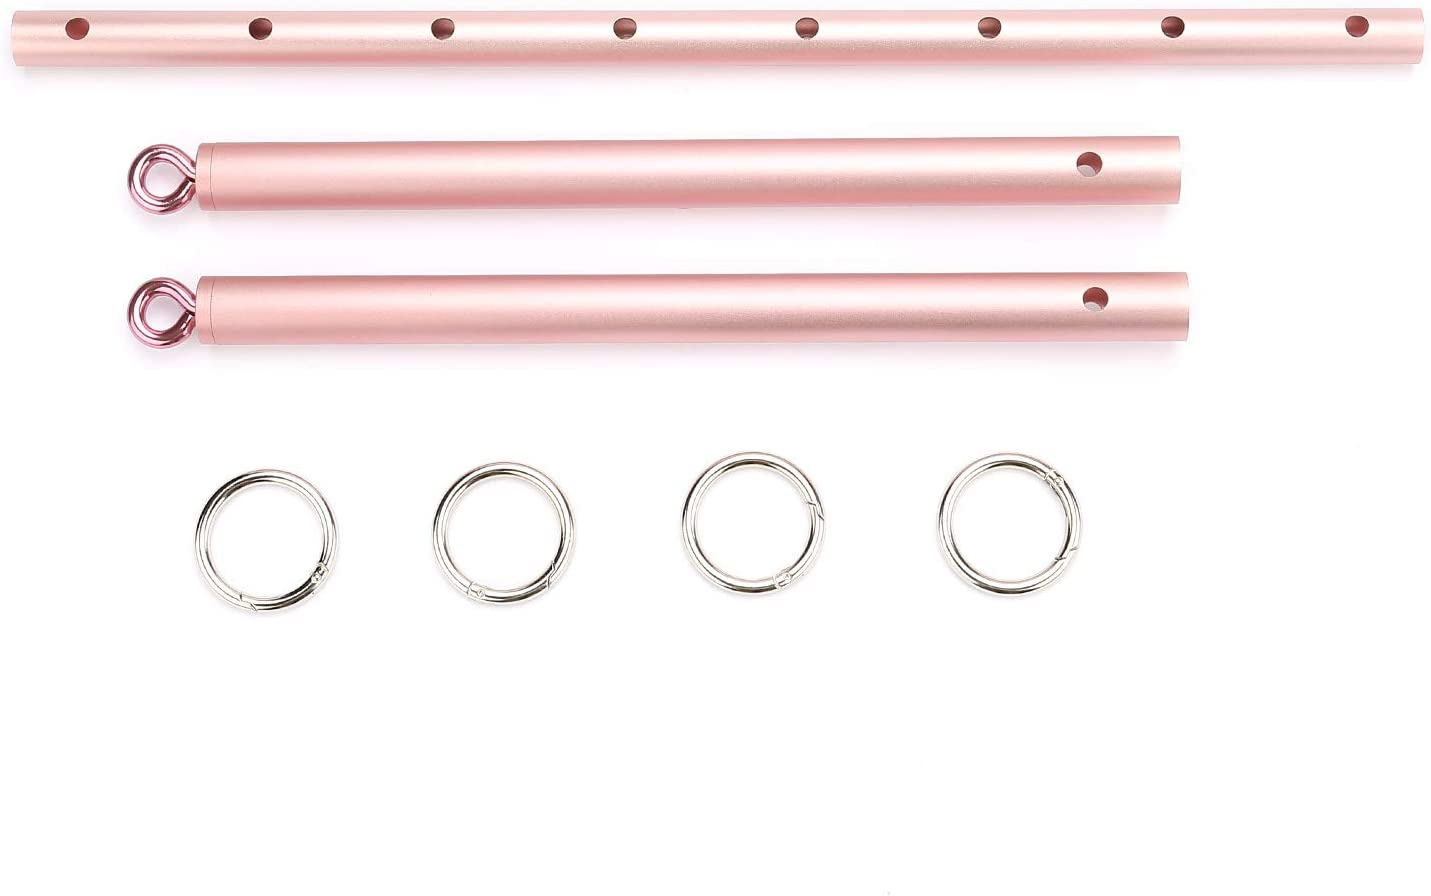 Frosted Rose Golden Exercise Spreader Bar Expandable Sports Aid Training Kit for Home Gyms Yoga